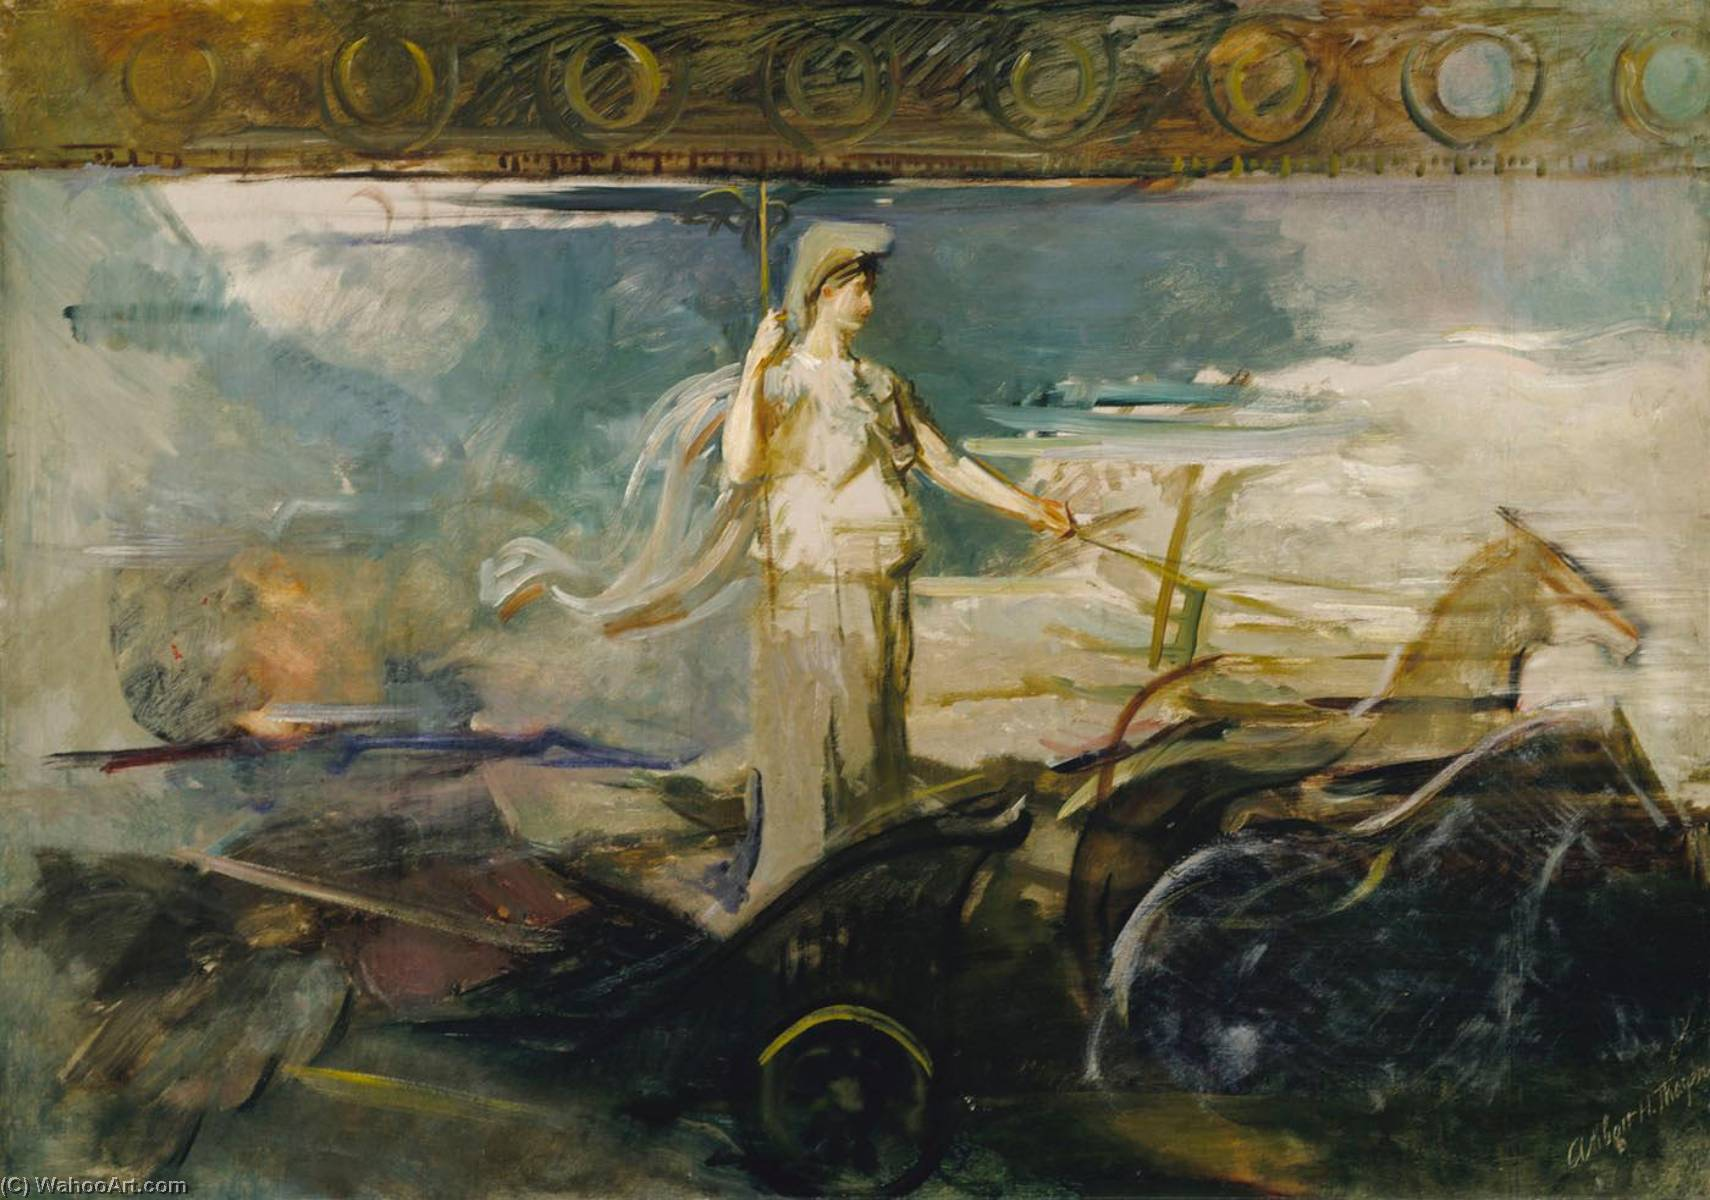 Minerva in a Chariot, Oil On Canvas by Abbott Handerson Thayer (1849-1921, U.S)